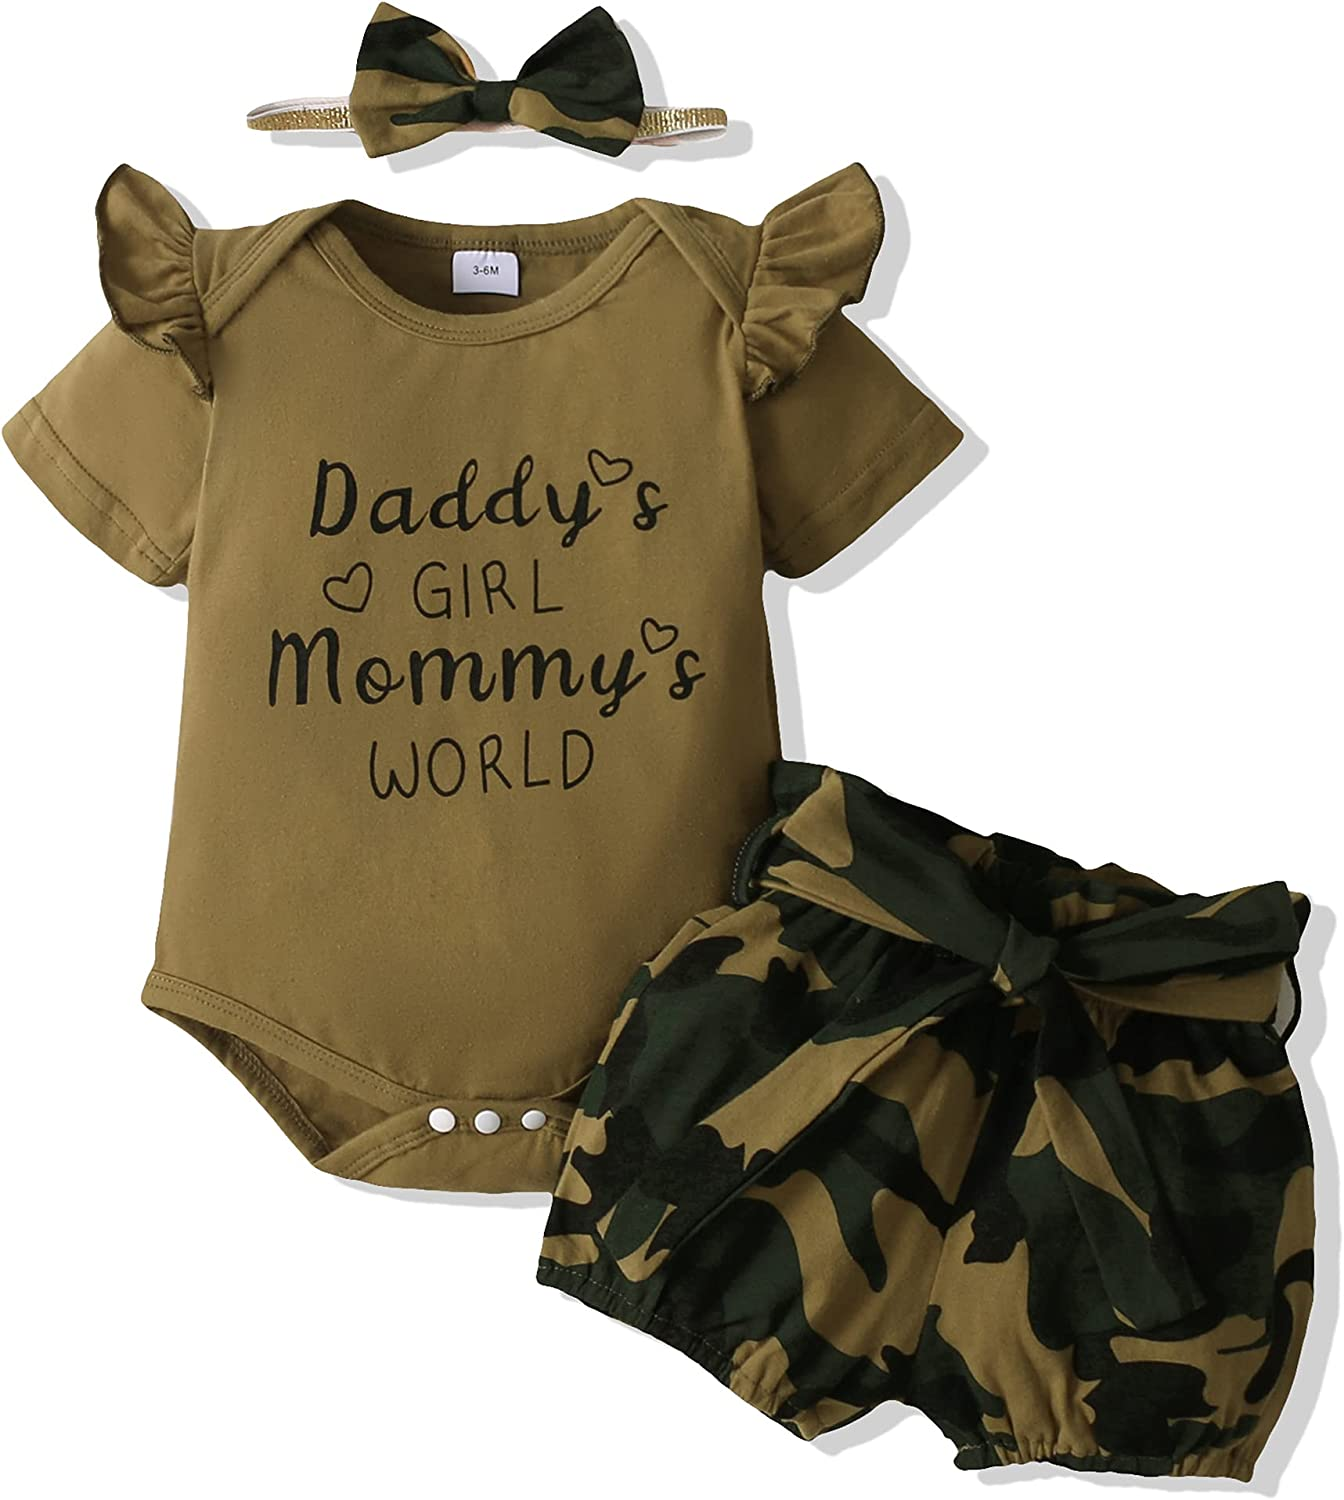 Renotemy Newborn Infant Baby Girl Clothes Summer Outfits Stuff Romper Pants Cute Toddler Baby Girl Shorts Sets